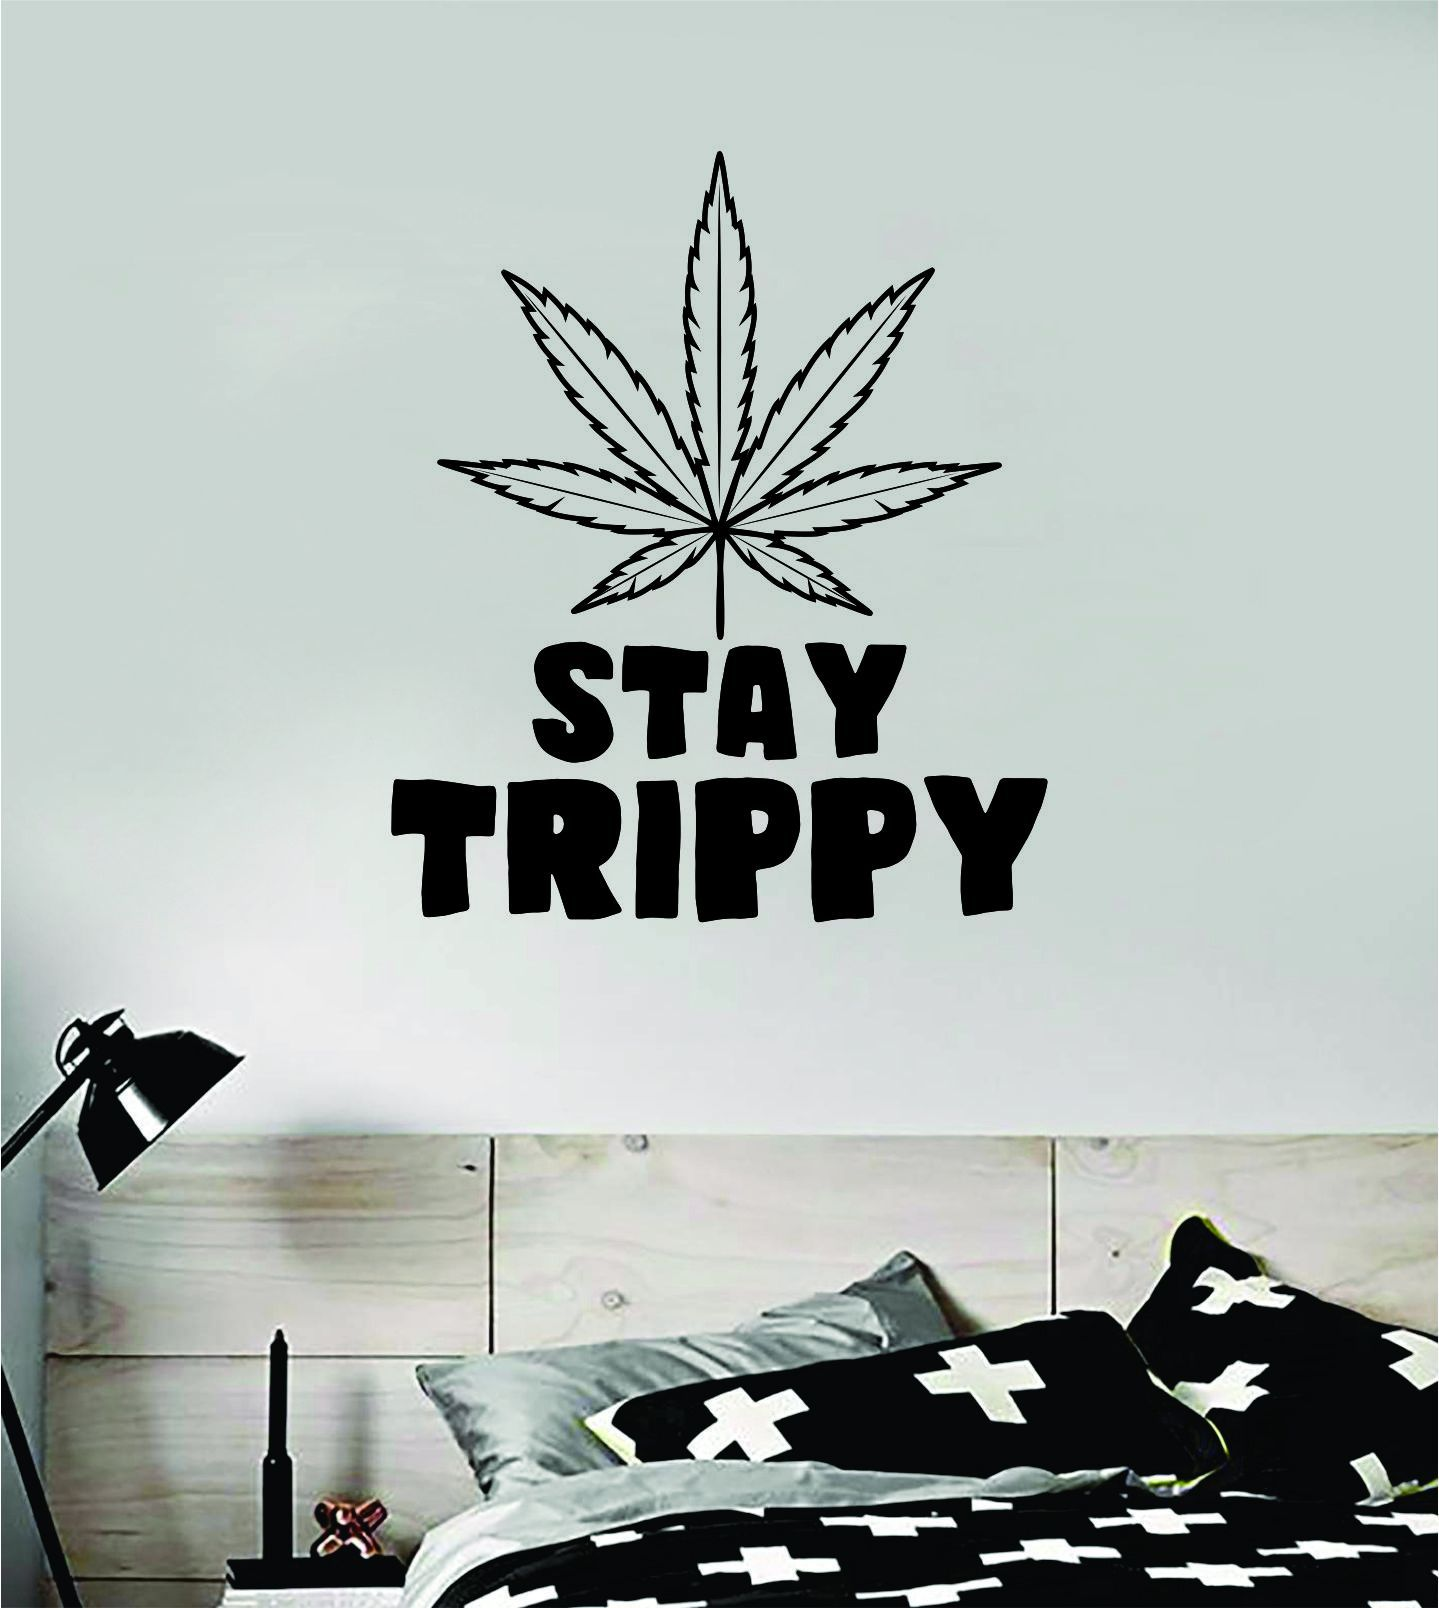 """Stay Trippy The latest in home decorating. Beautiful wall vinyl decals, that are simple to apply, are a great accent piece for any room, come in an array of colors, and are a cheap alternative to a custom paint job.Default color is black MEASUREMENTS:28"""" x 24"""" About Our Wall Decals:* Each decal is made of high quality, self-adhesive and waterproof vinyl.* Our vinyl is rated to last 7 years outdoors and even longer indoors.* Decals can be applied to any clean, smooth and flat surface. Put them on"""